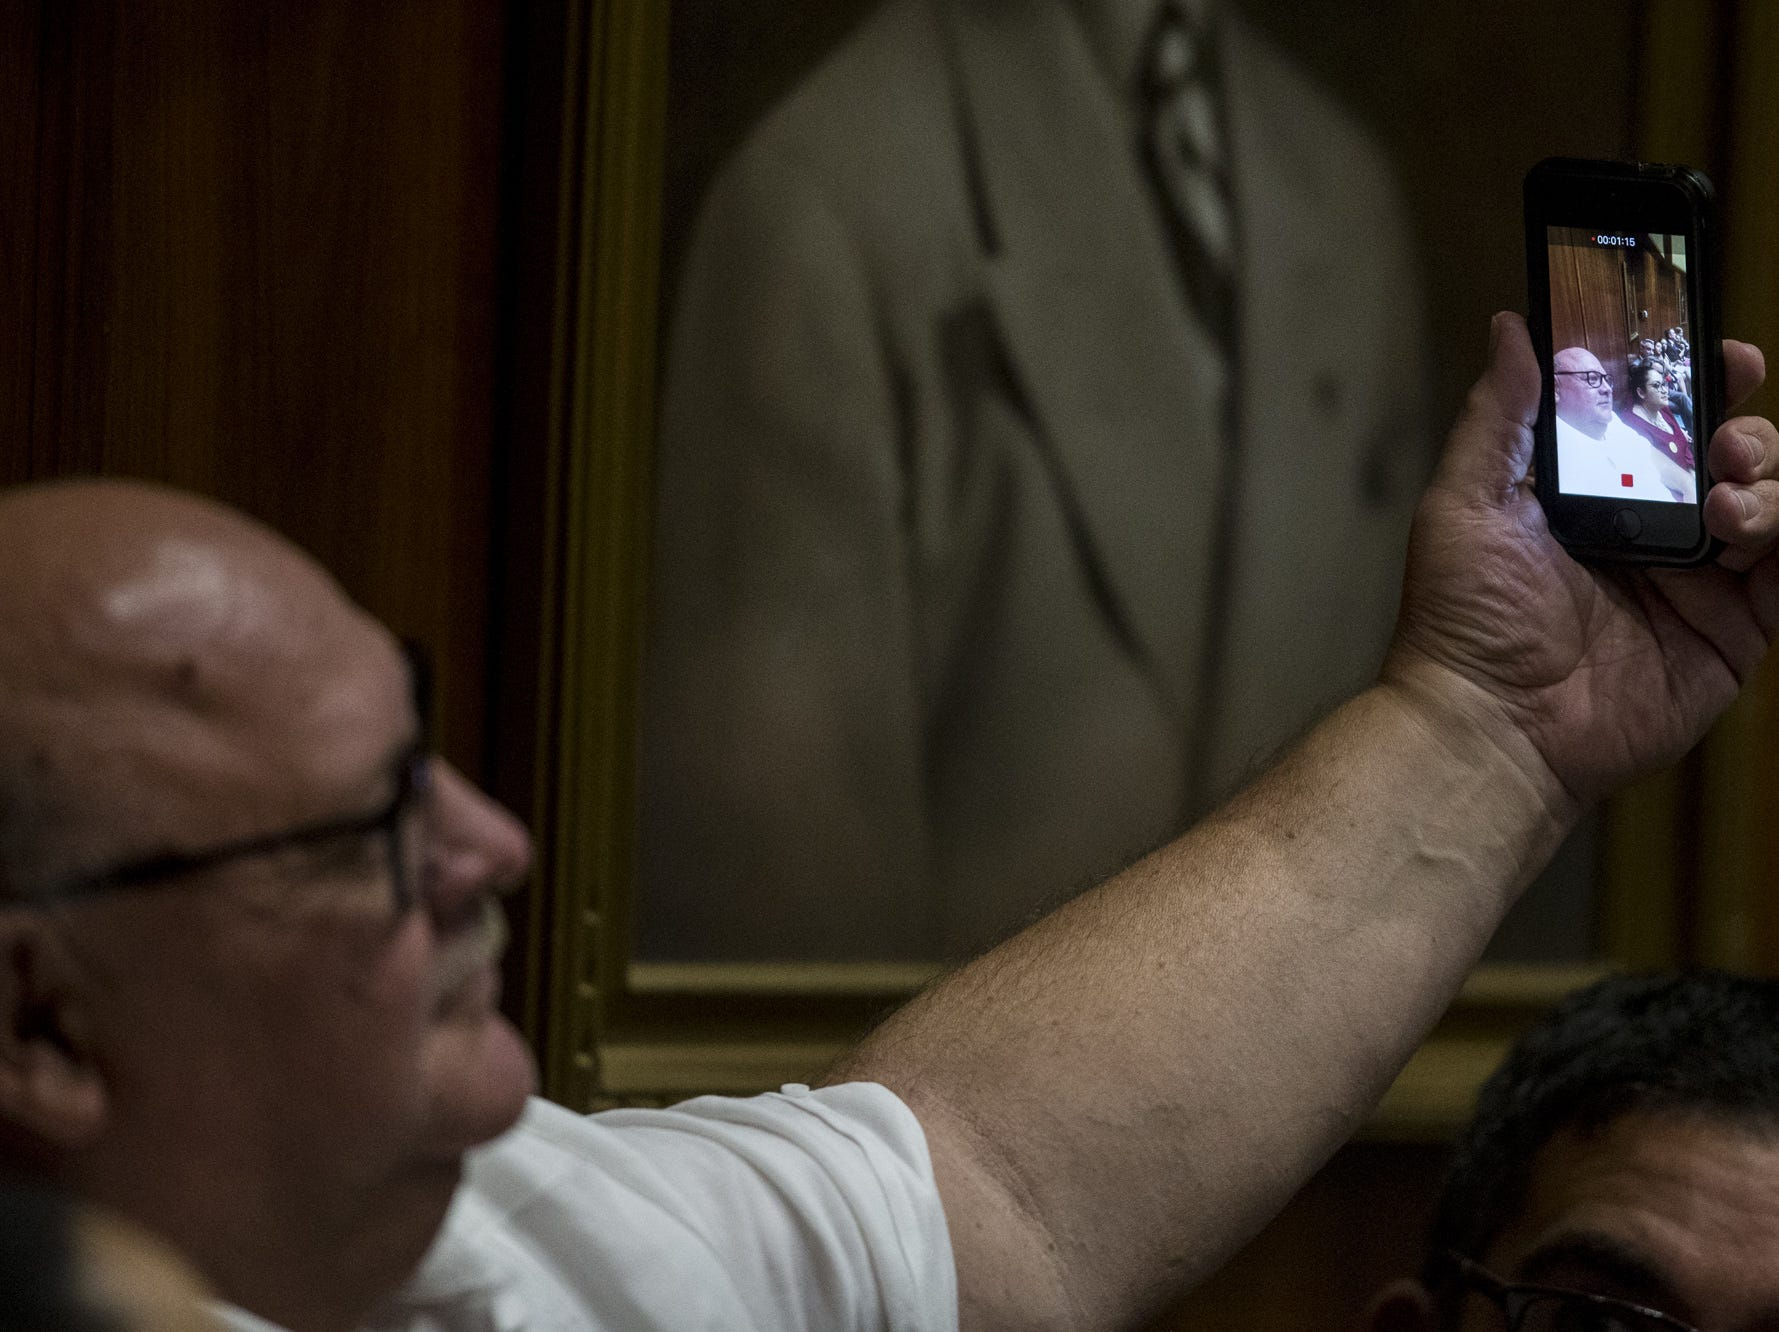 A guest takes a video during Opening Day of the Legislature on Jan. 14, 2019, at the Arizona House of Representatives Chambers in Phoenix.